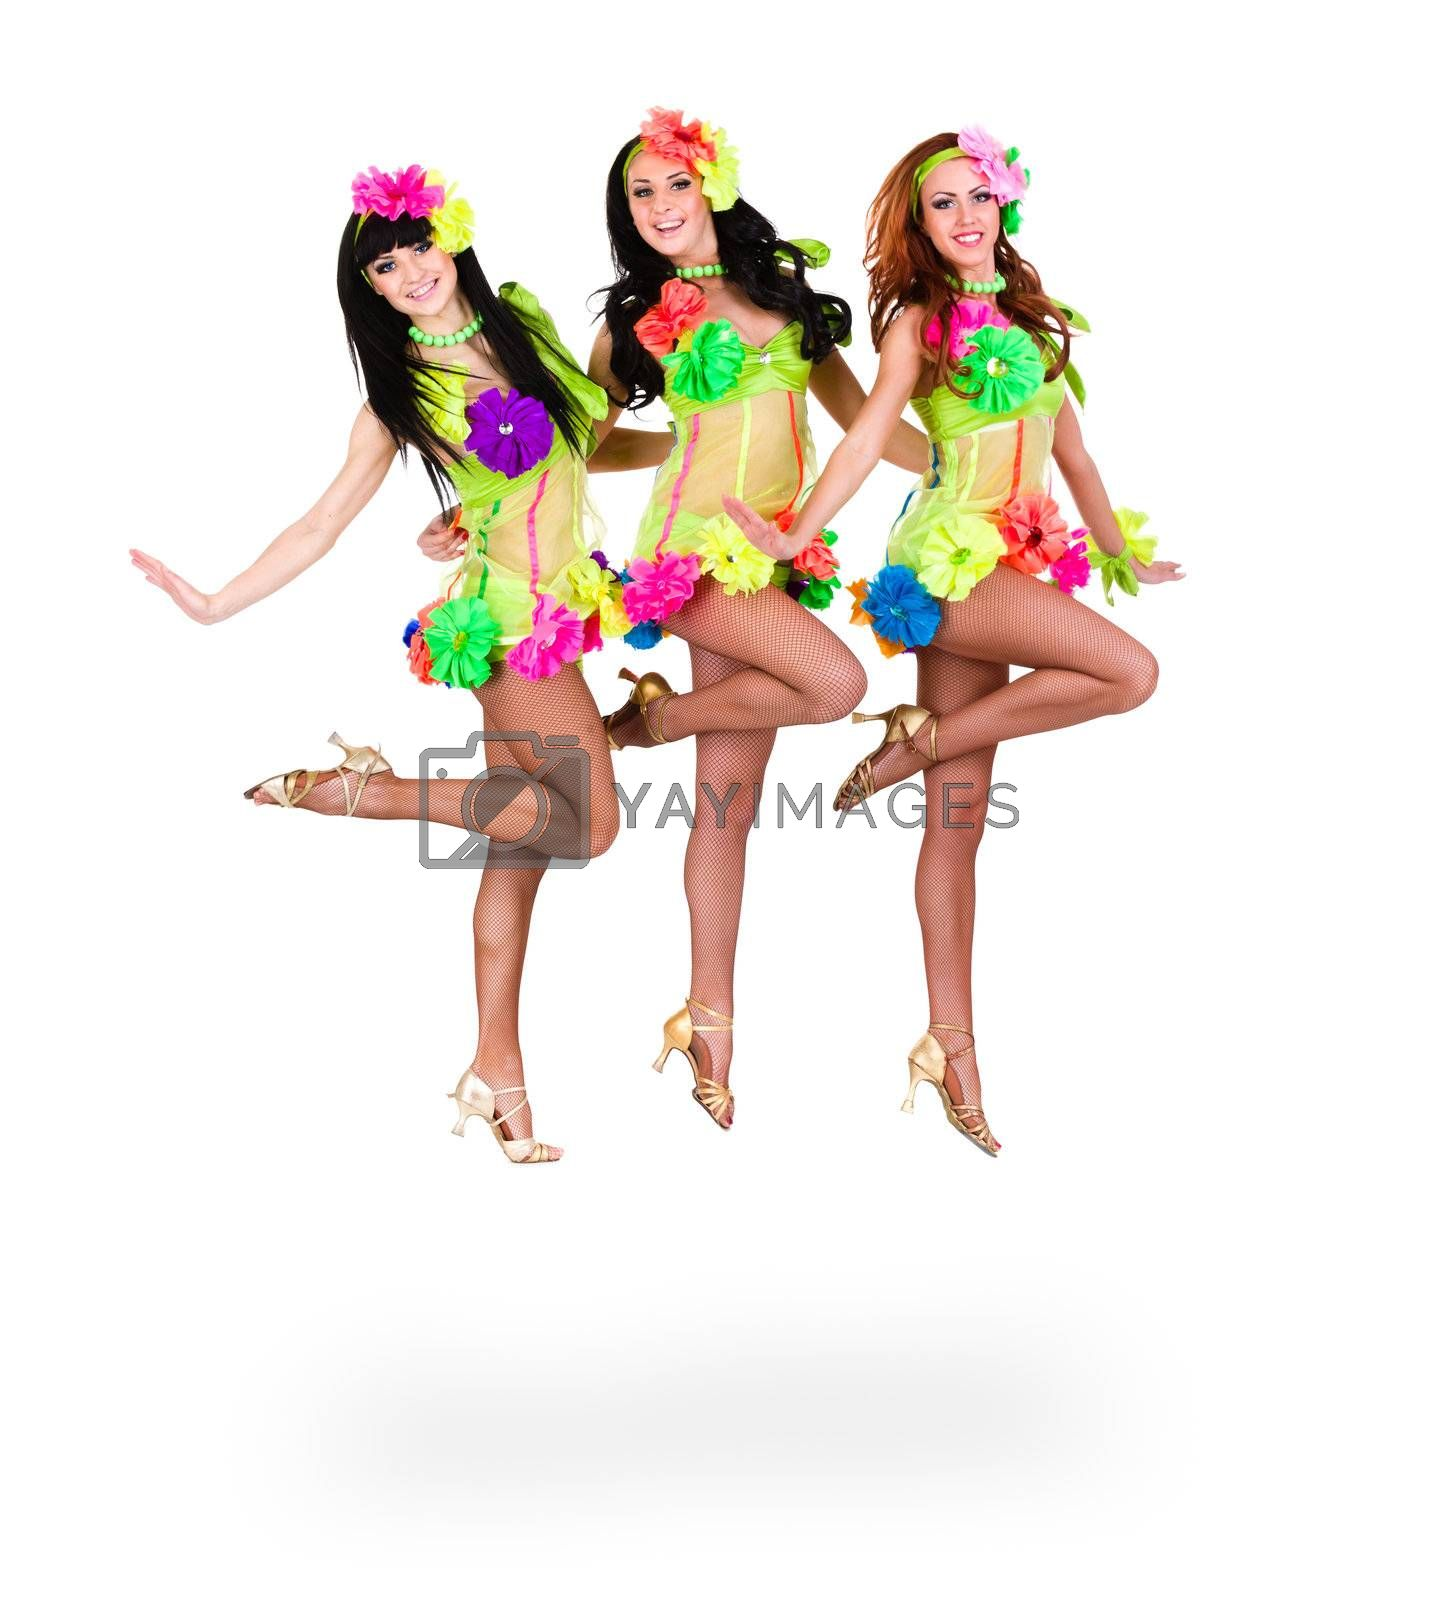 three beautiful carnival dancers women jumping against isolated white background